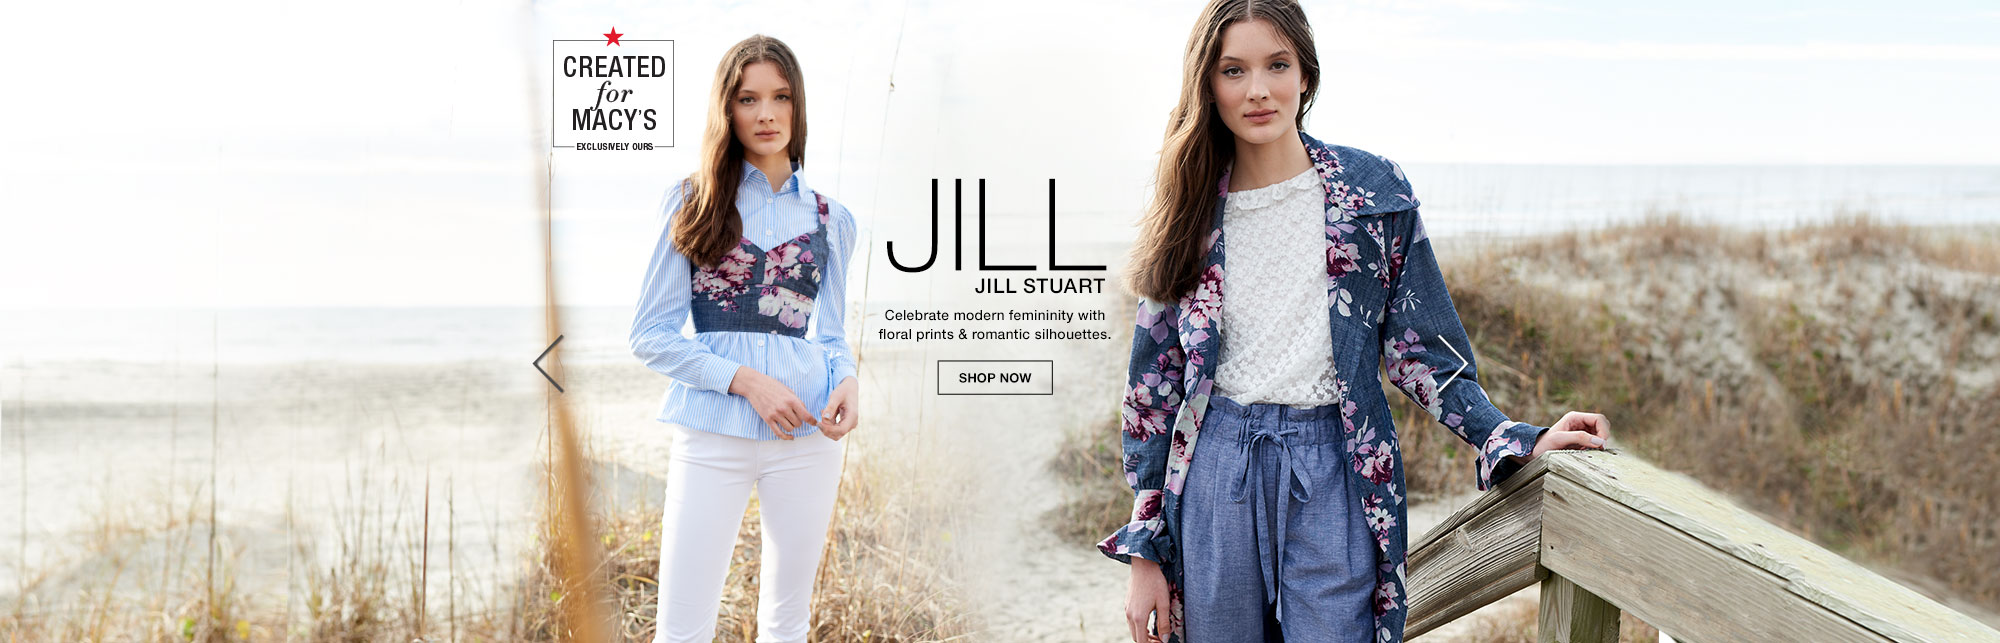 Jill Jill Stuart. Celebrate modern femininity with floral prints and romantic silhouettes.